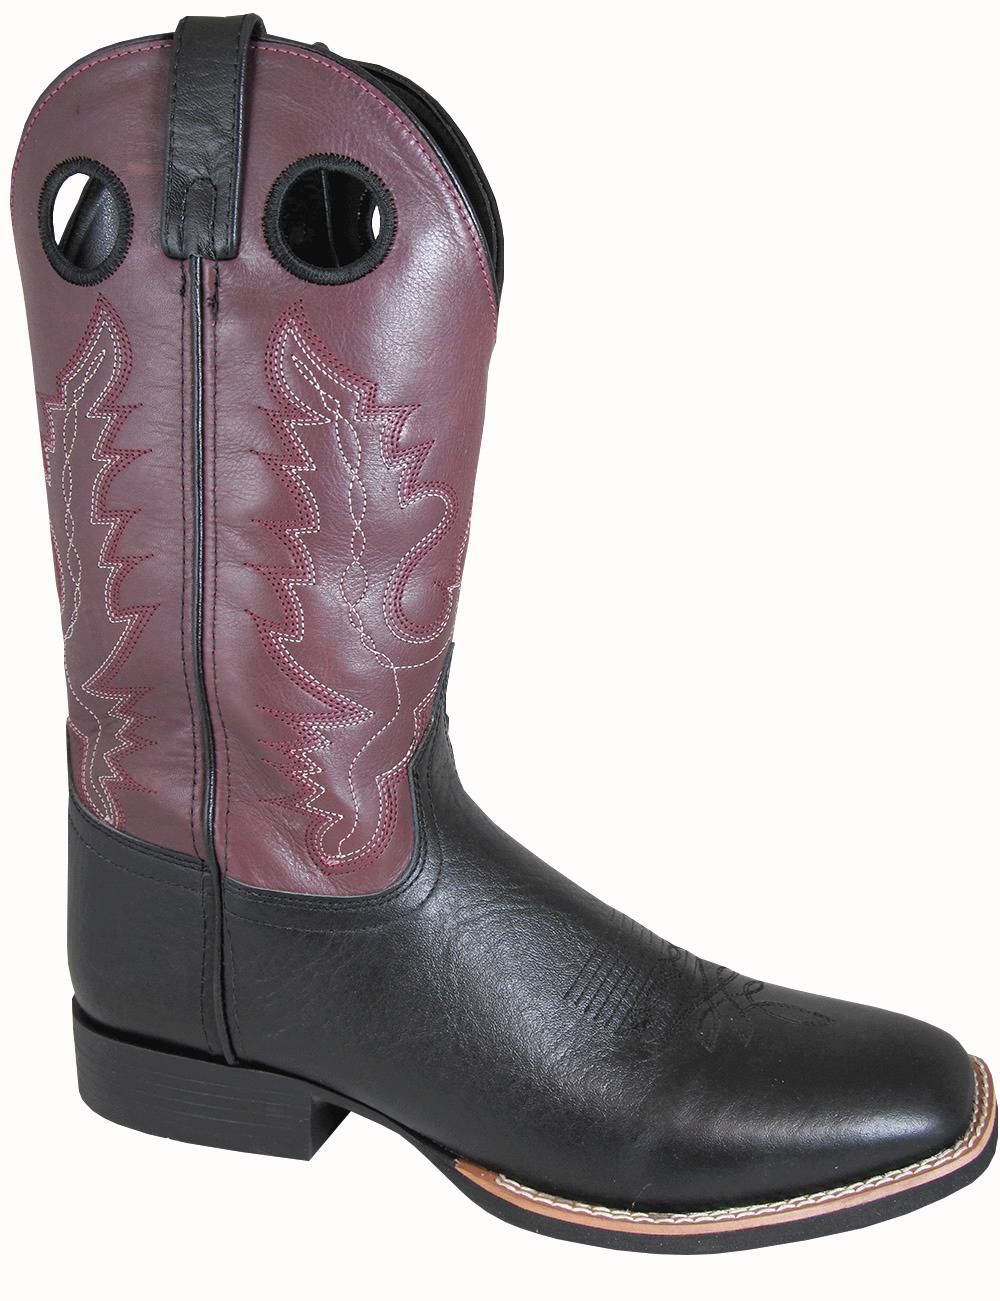 Smoky Mountain Mens Marshall Leather Square Toe Boots - Black/Plum